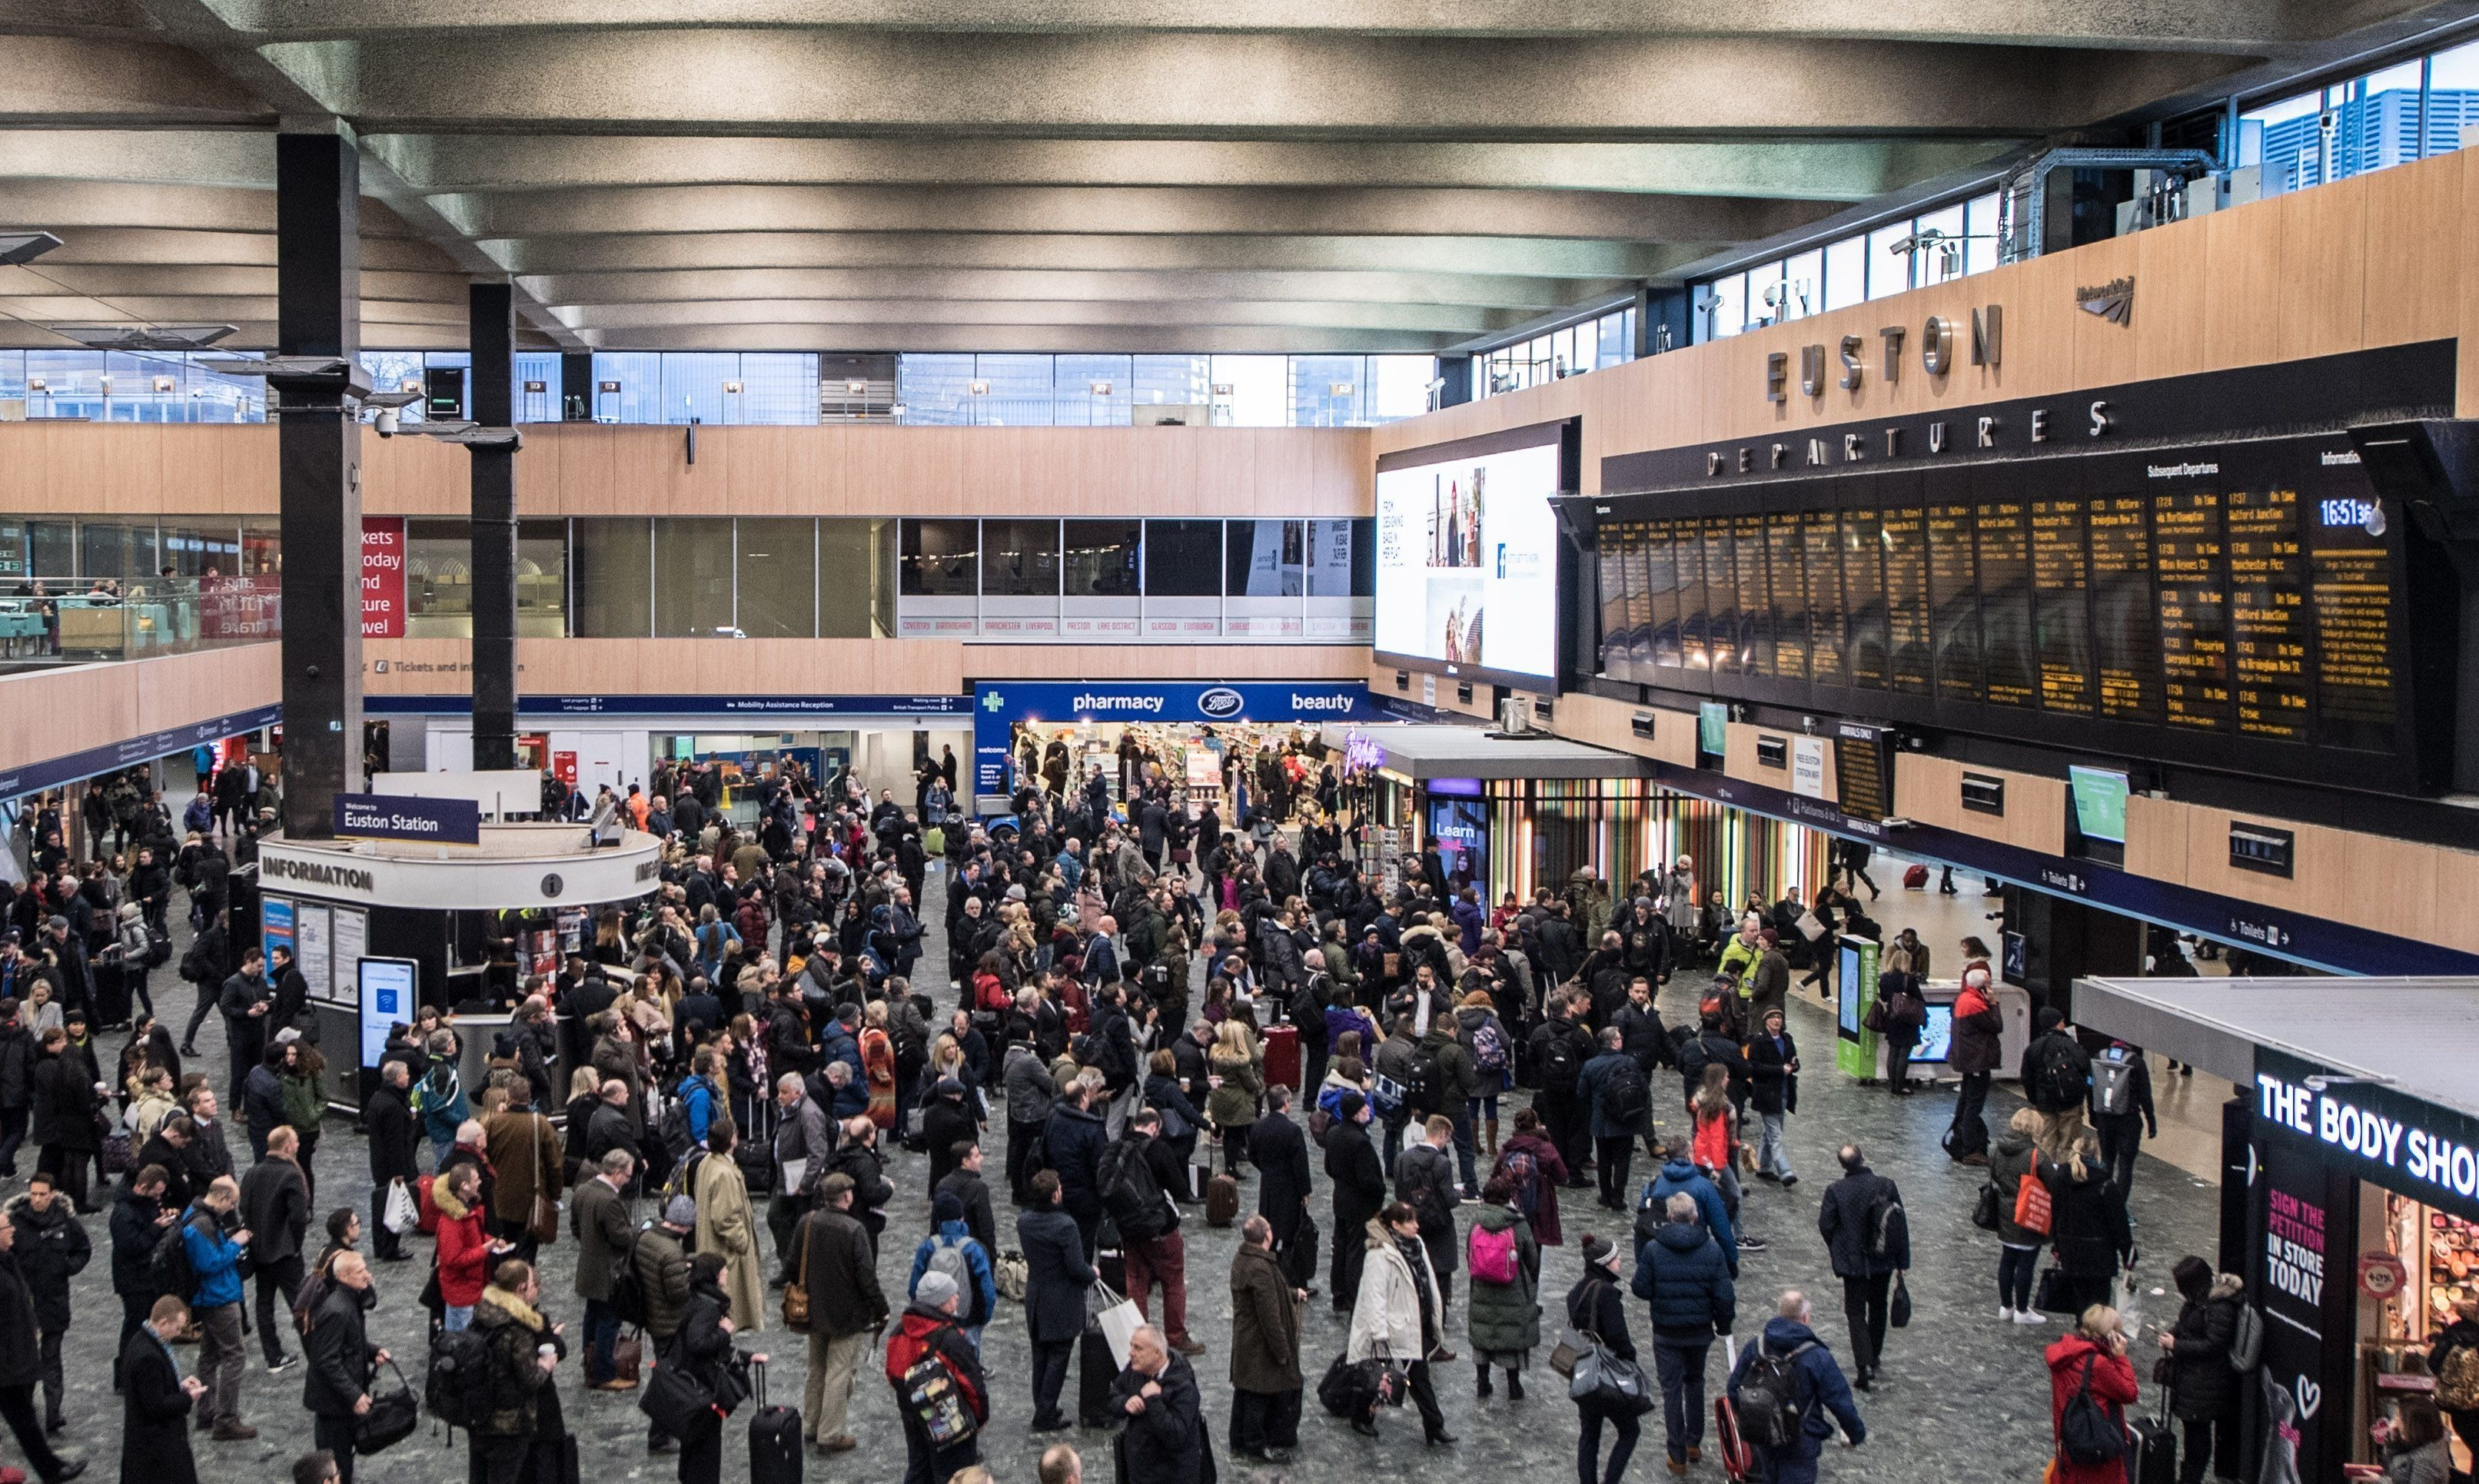 Travel This Bank Holiday Is Going To Be A Nightmare - Here's What You Need To